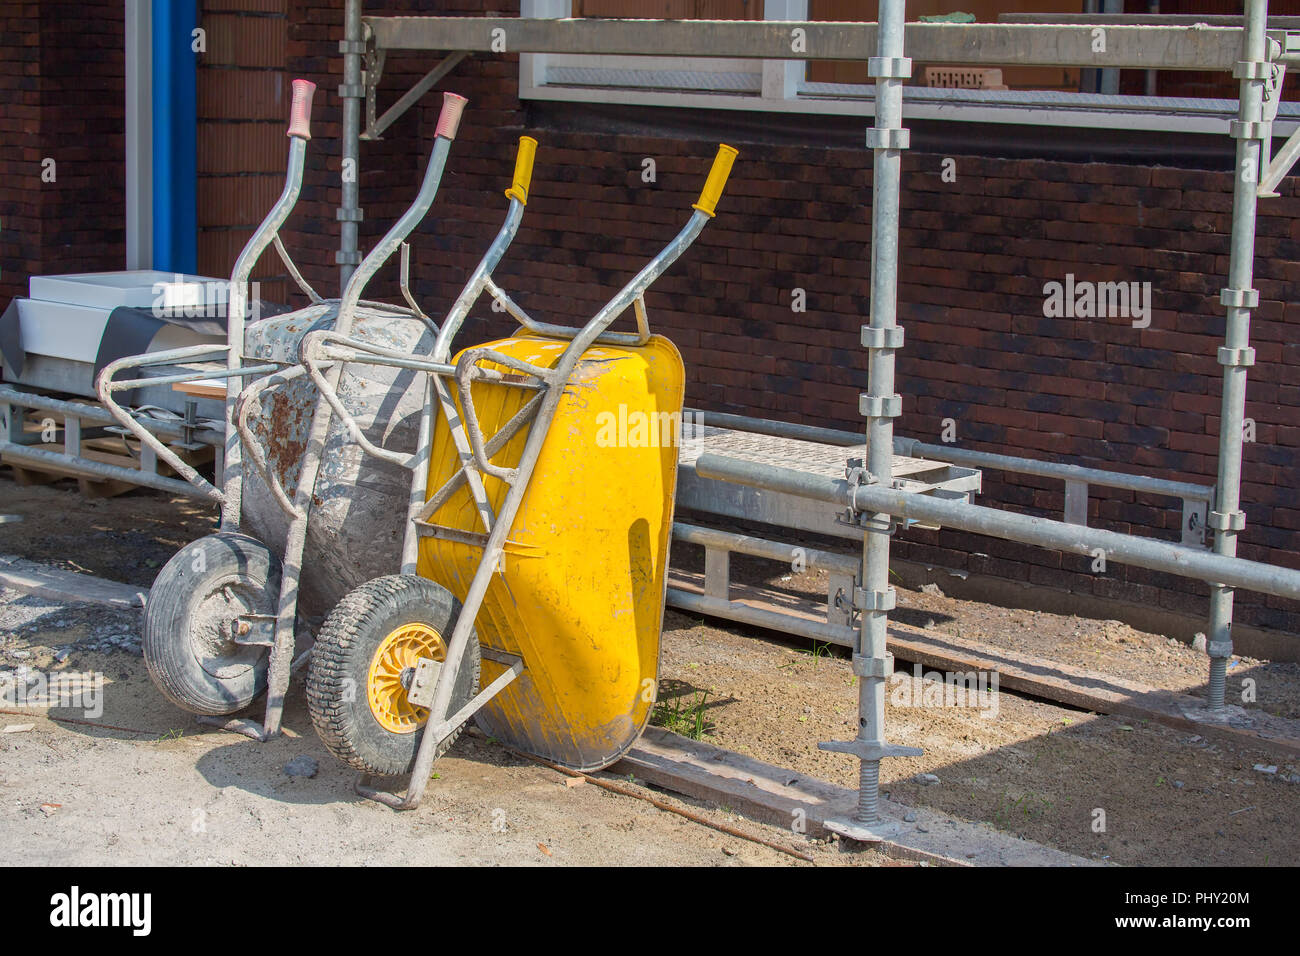 Wheelbarrows and scaffolding on construction site - Stock Image